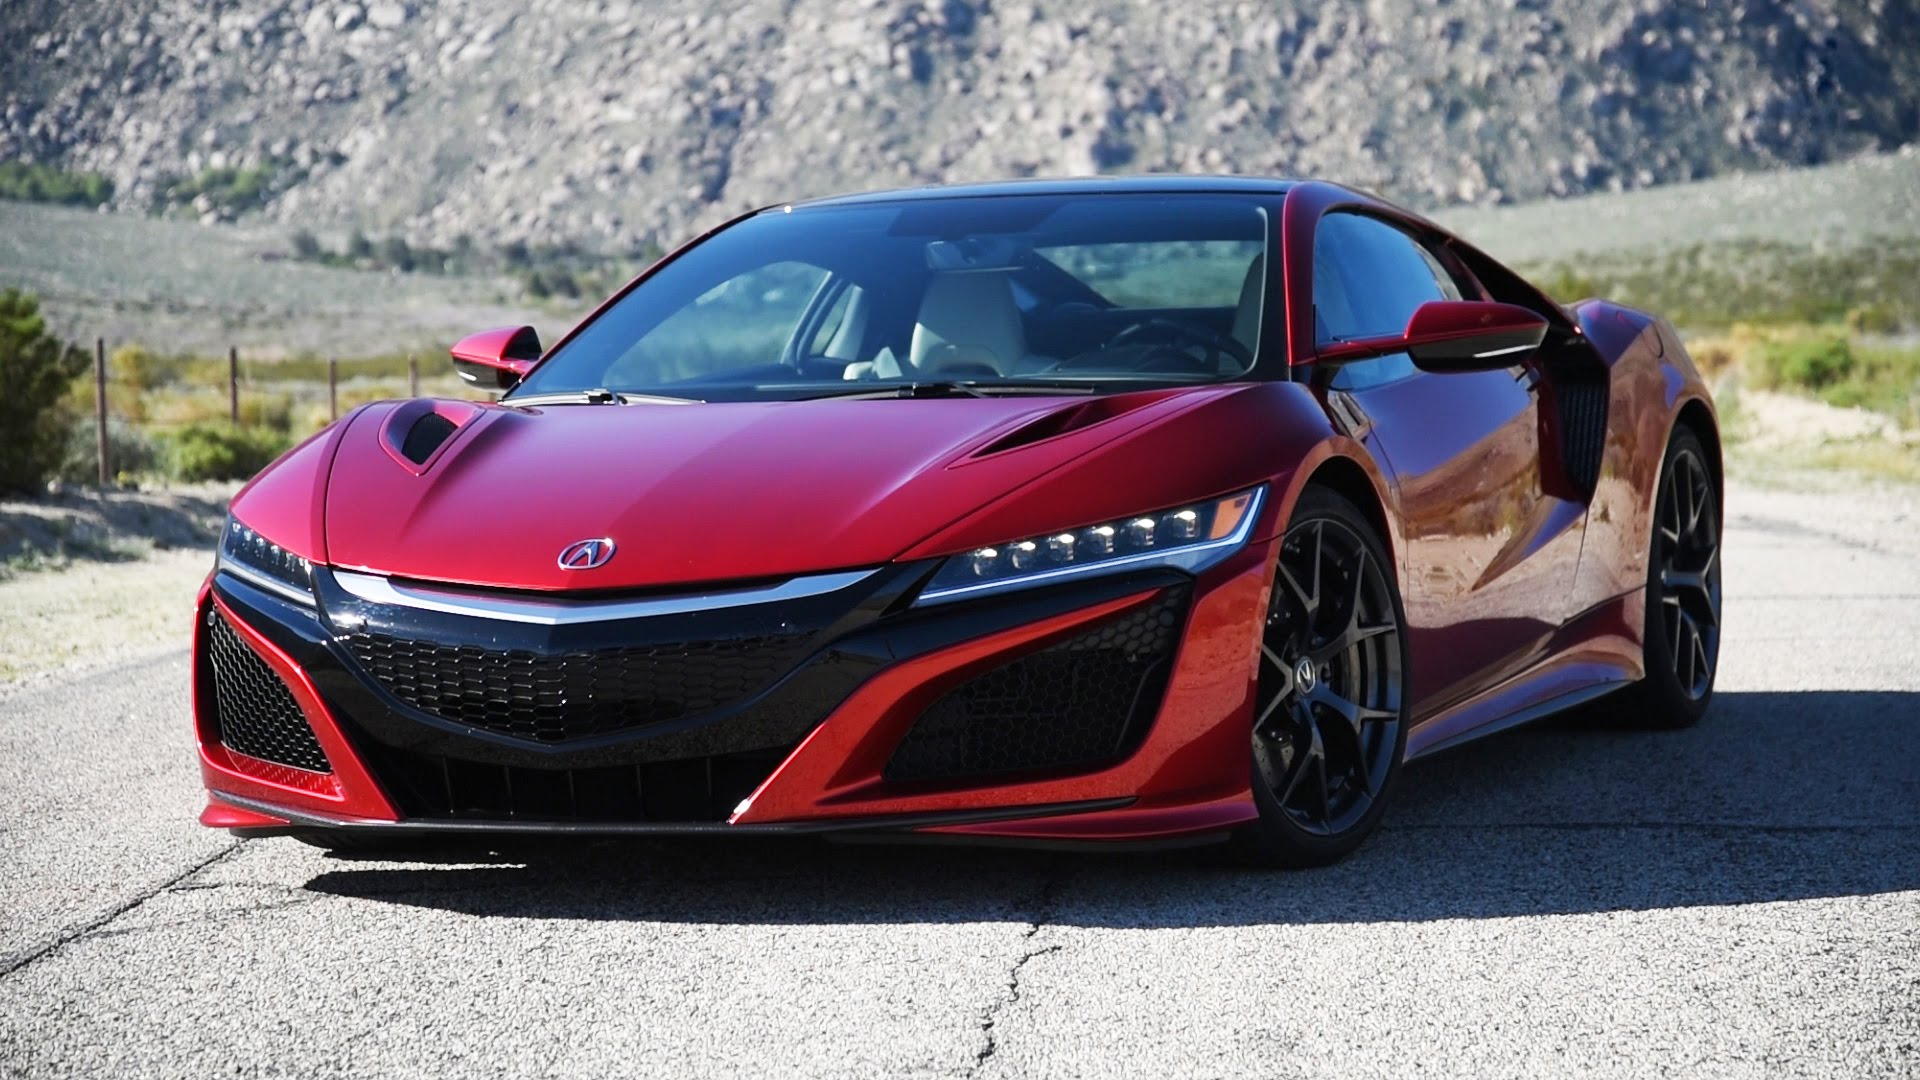 Super Cars And Classics Supercars For Sale The Acura Nsx